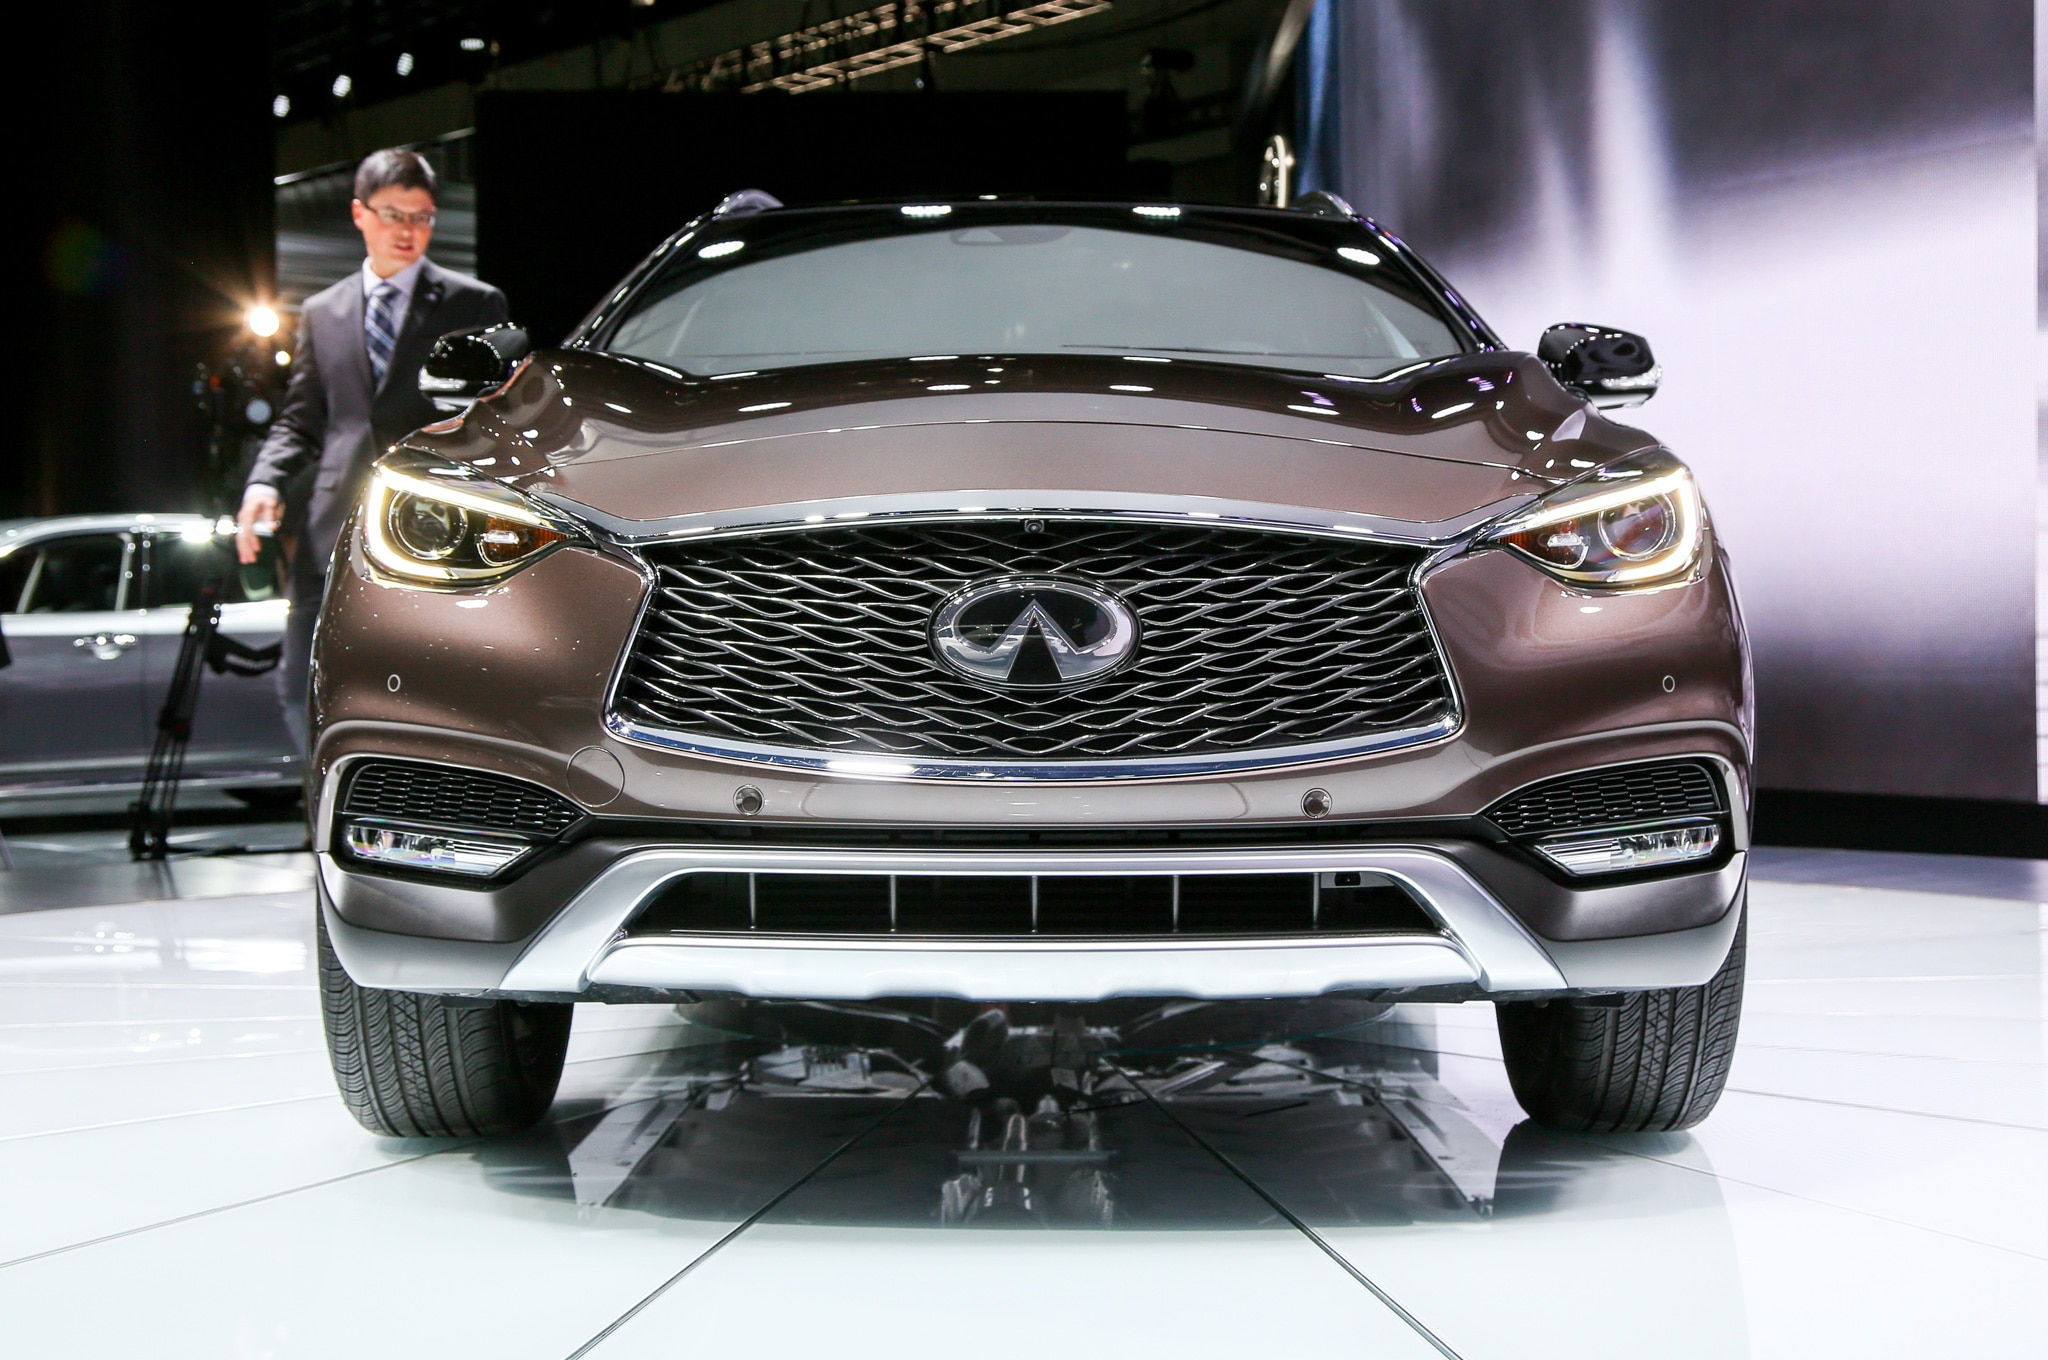 2017 infiniti qx30 luxury crossover debuts at l a auto show. Black Bedroom Furniture Sets. Home Design Ideas